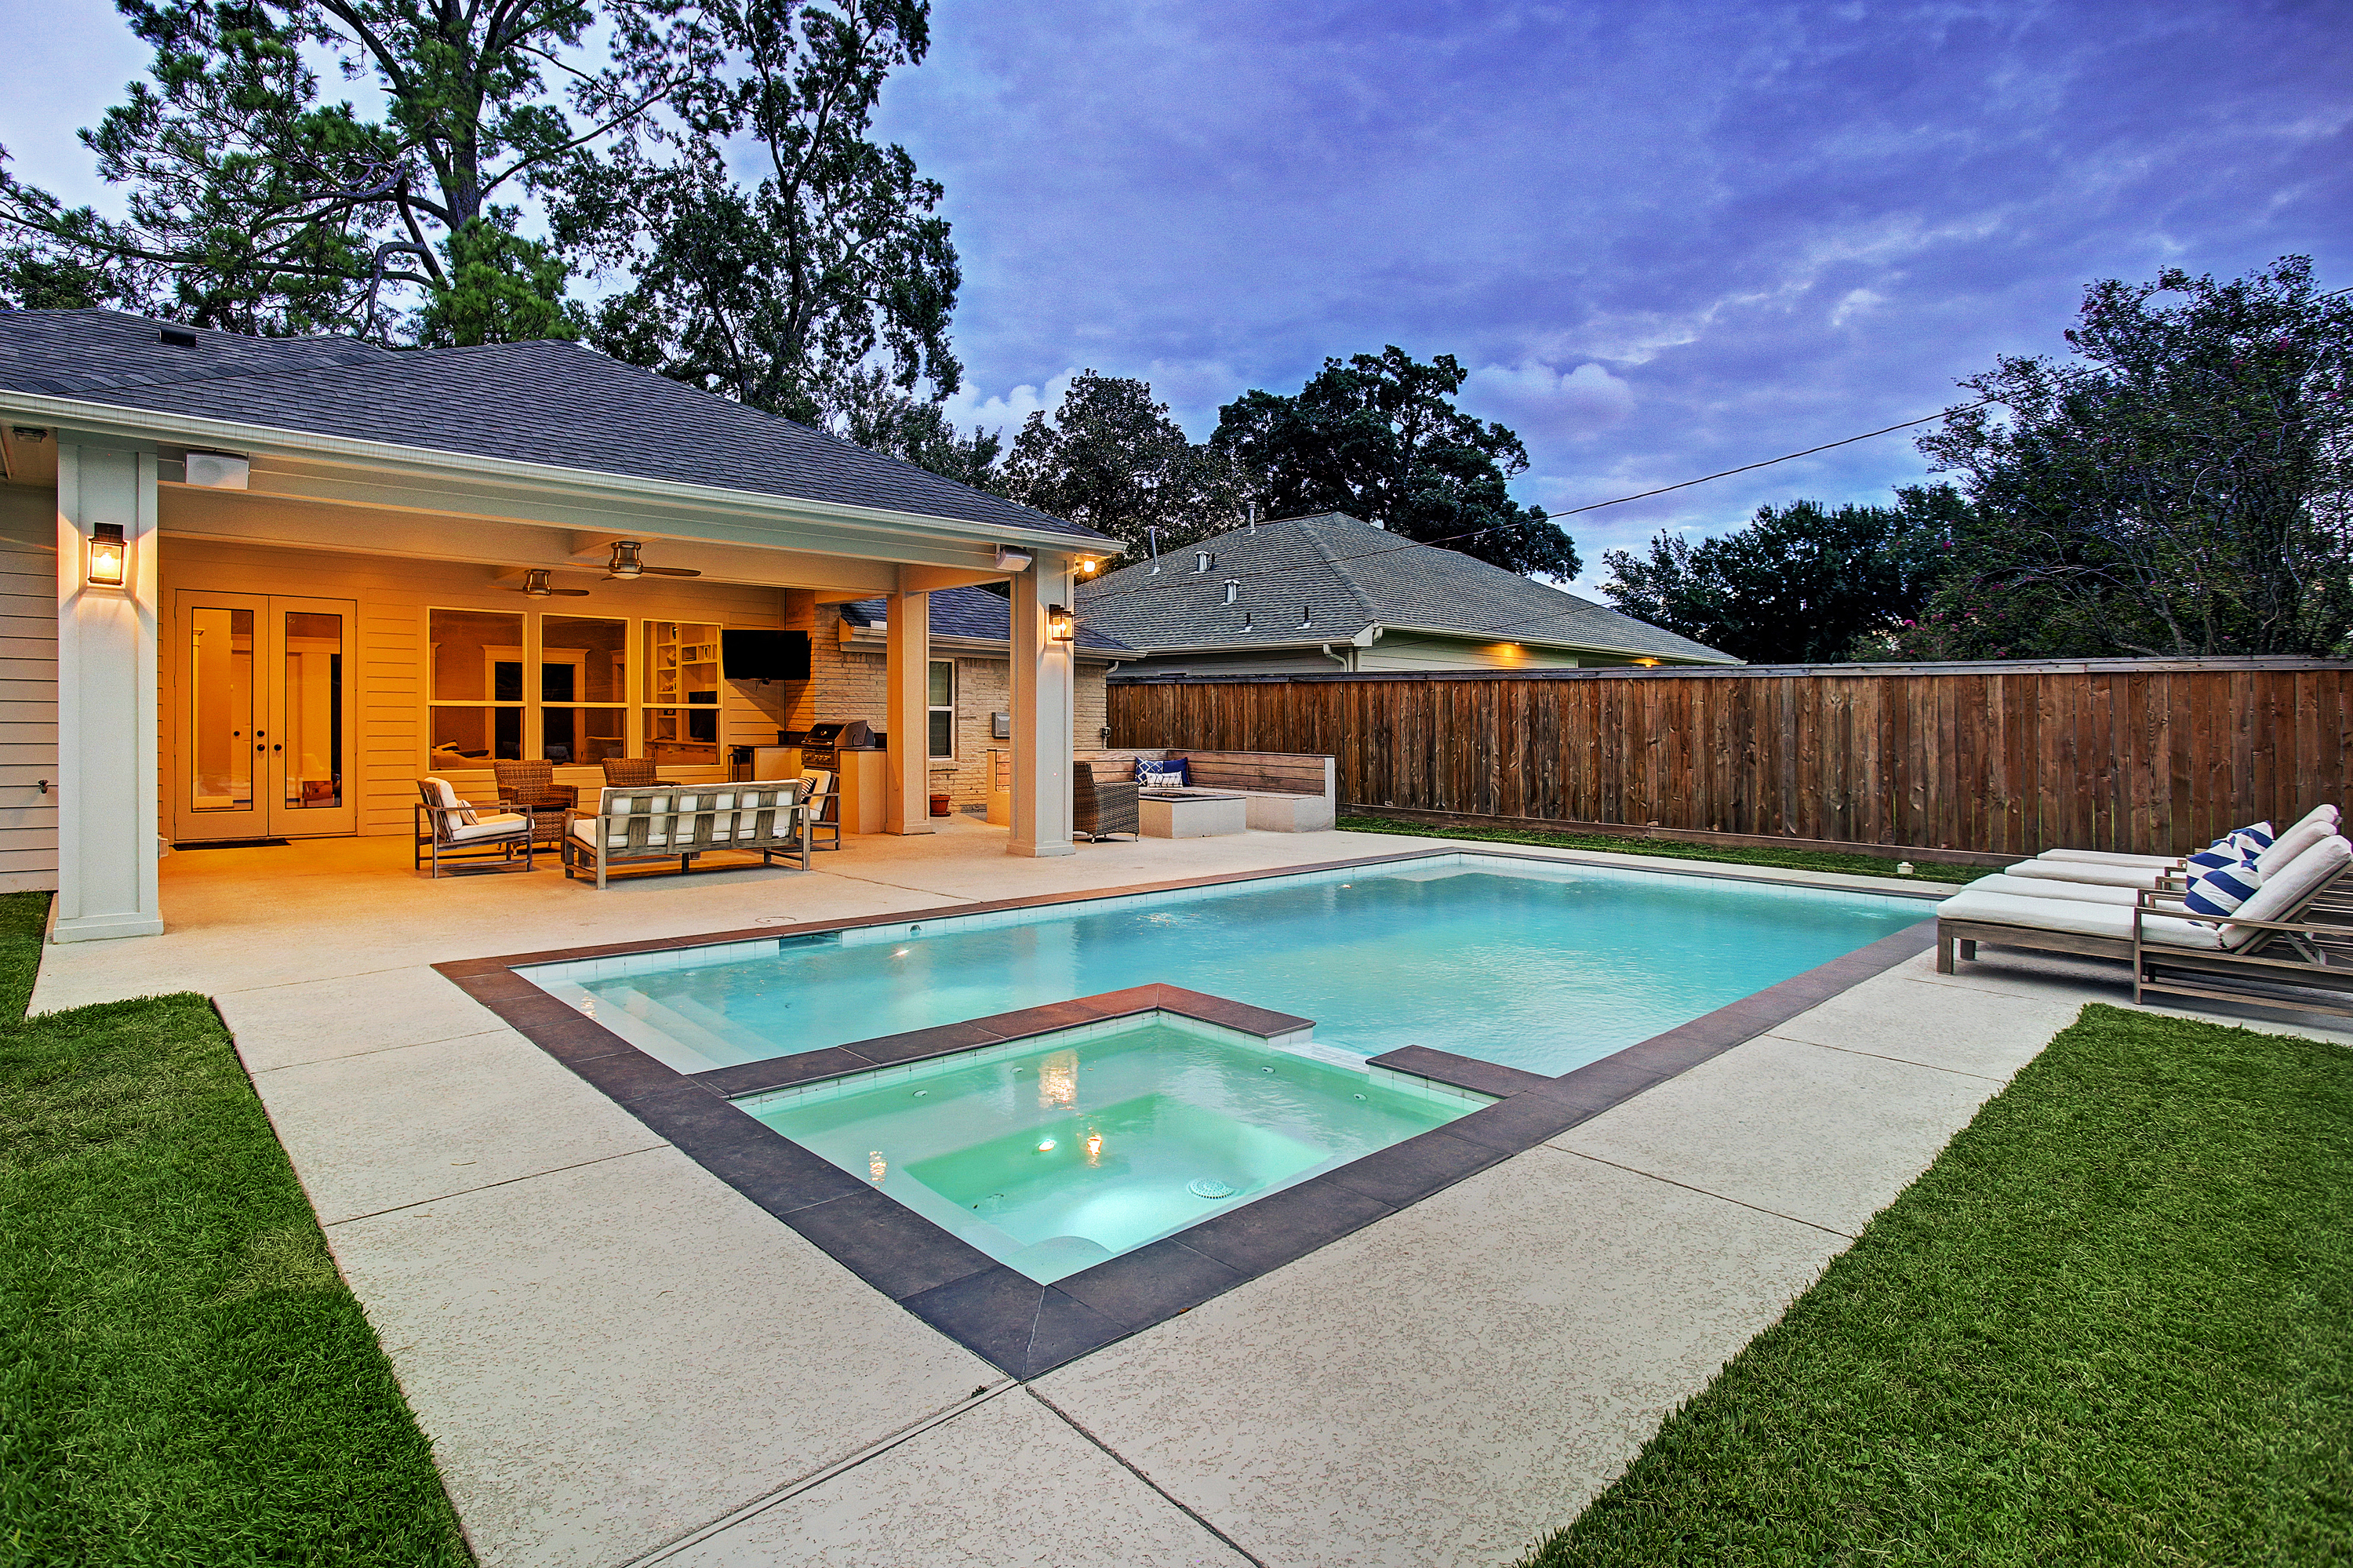 Pool And Patio Cover With Fire Pit In Timber Grove Area Of